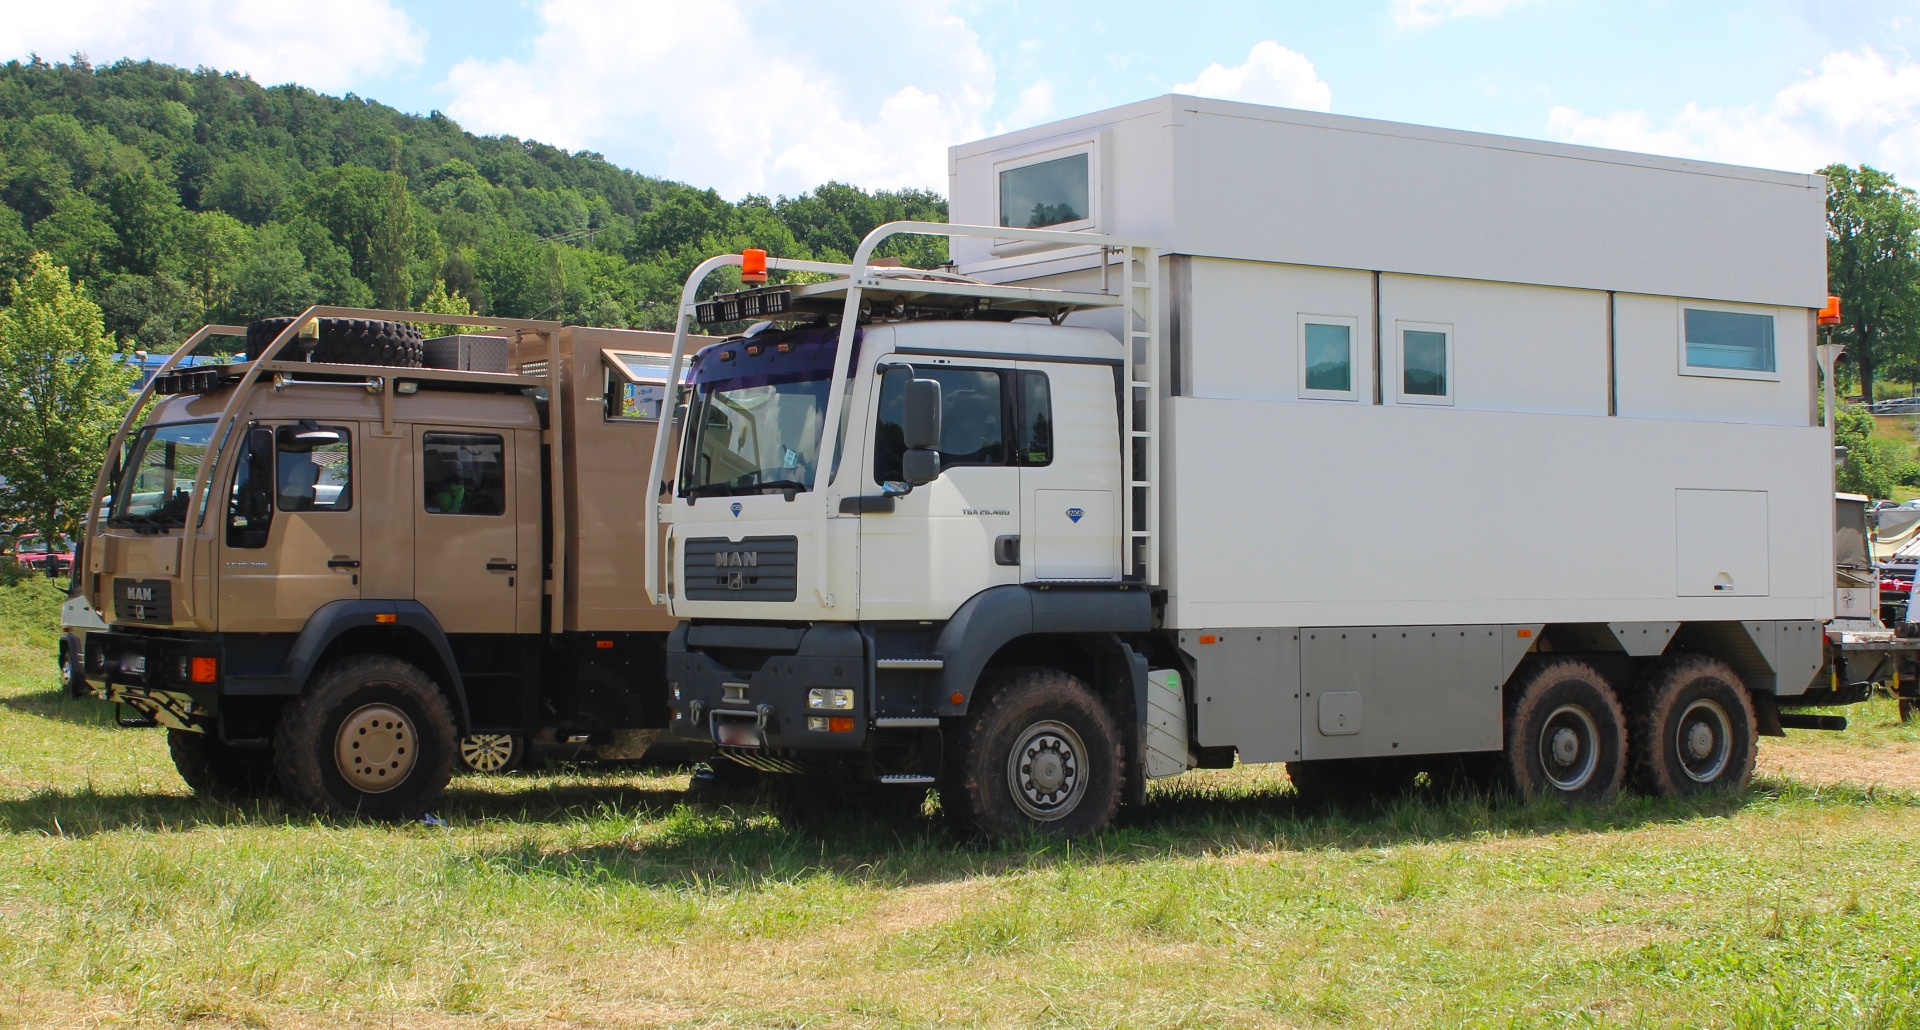 In photos: Adrift in a sea of monstrous camping machines at